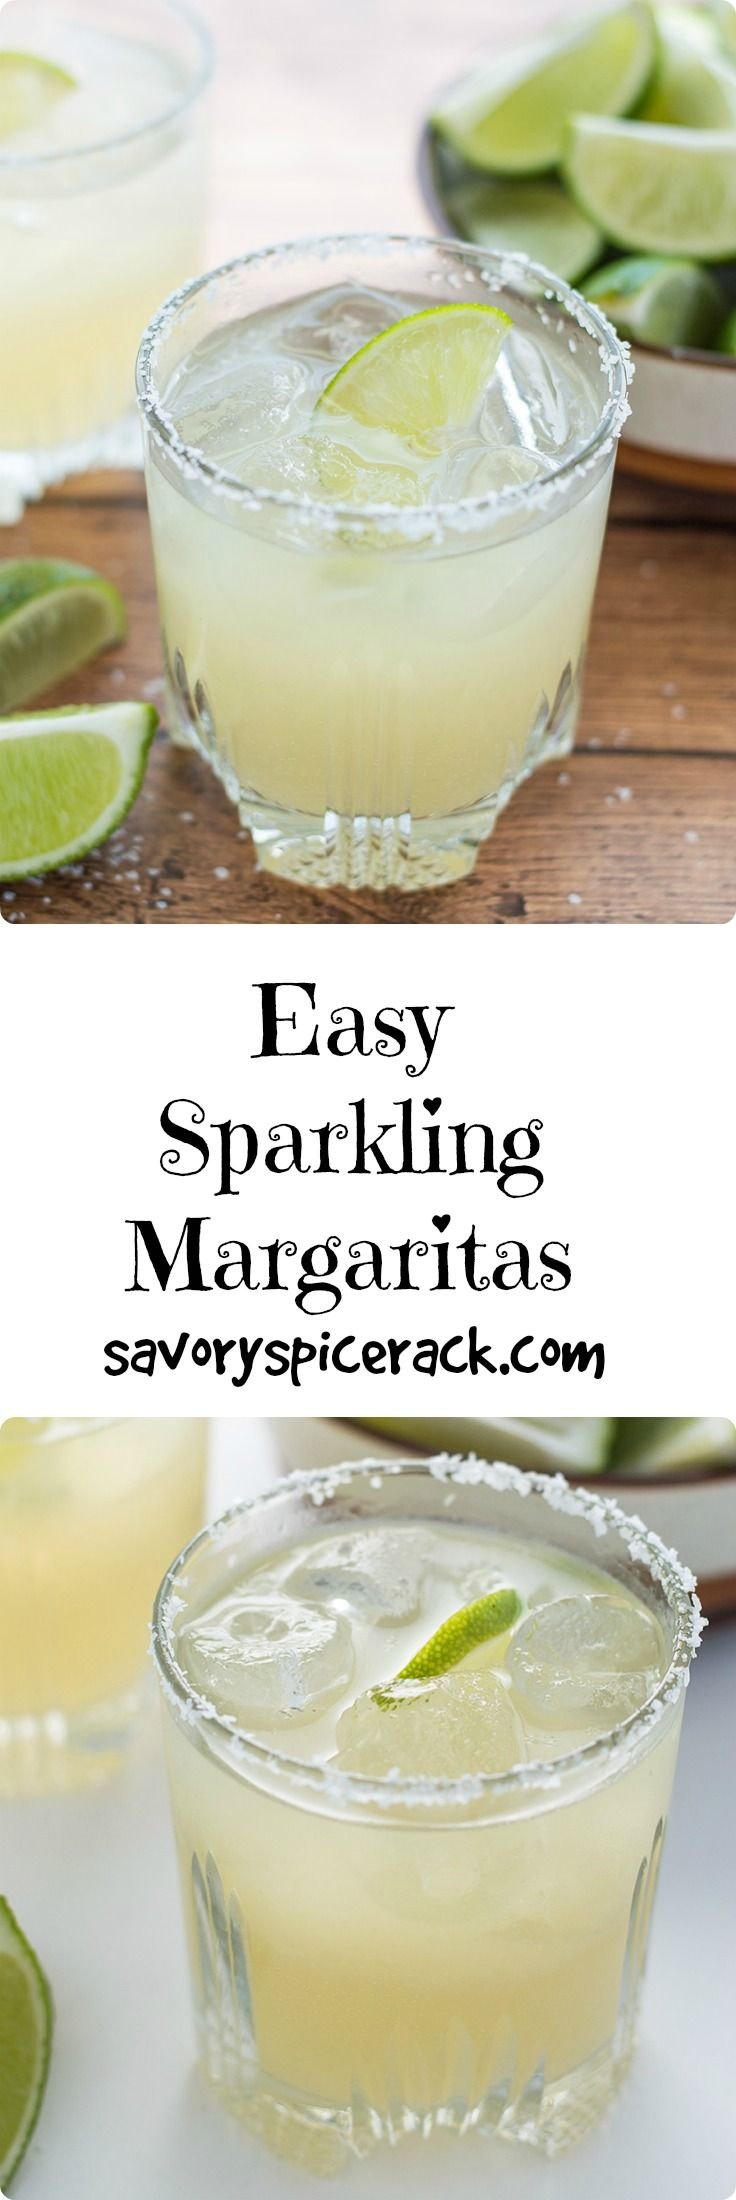 ... Mayo Drinks on Pinterest | Simple syrup, Tequila drinks and Margaritas